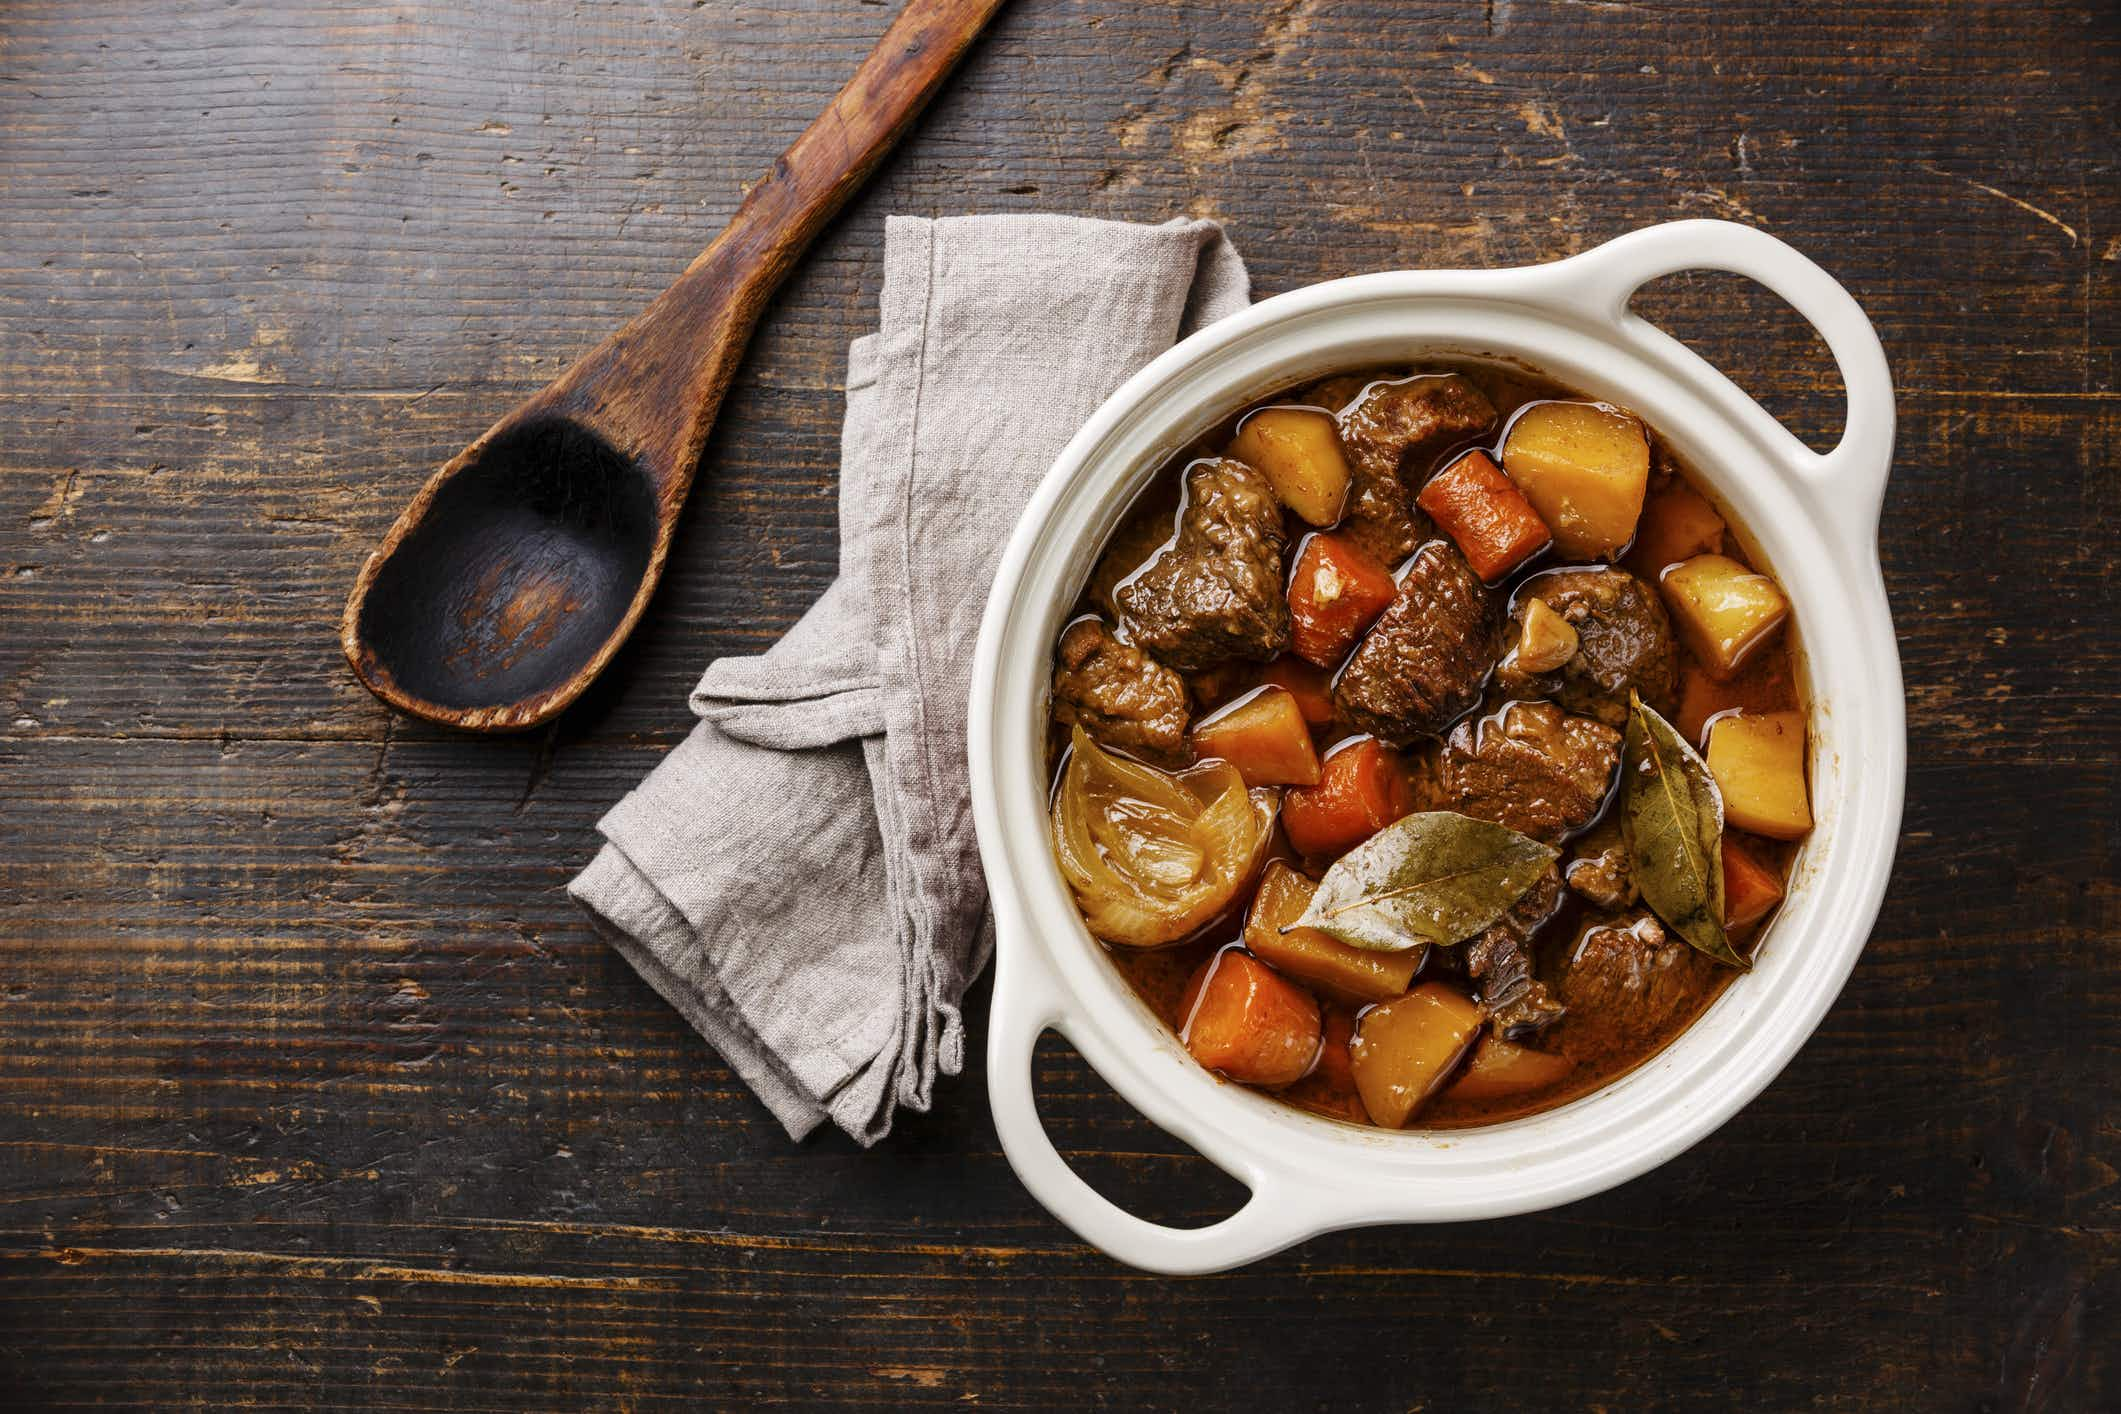 If you want to eat like the French, reach for some beef bourguignon